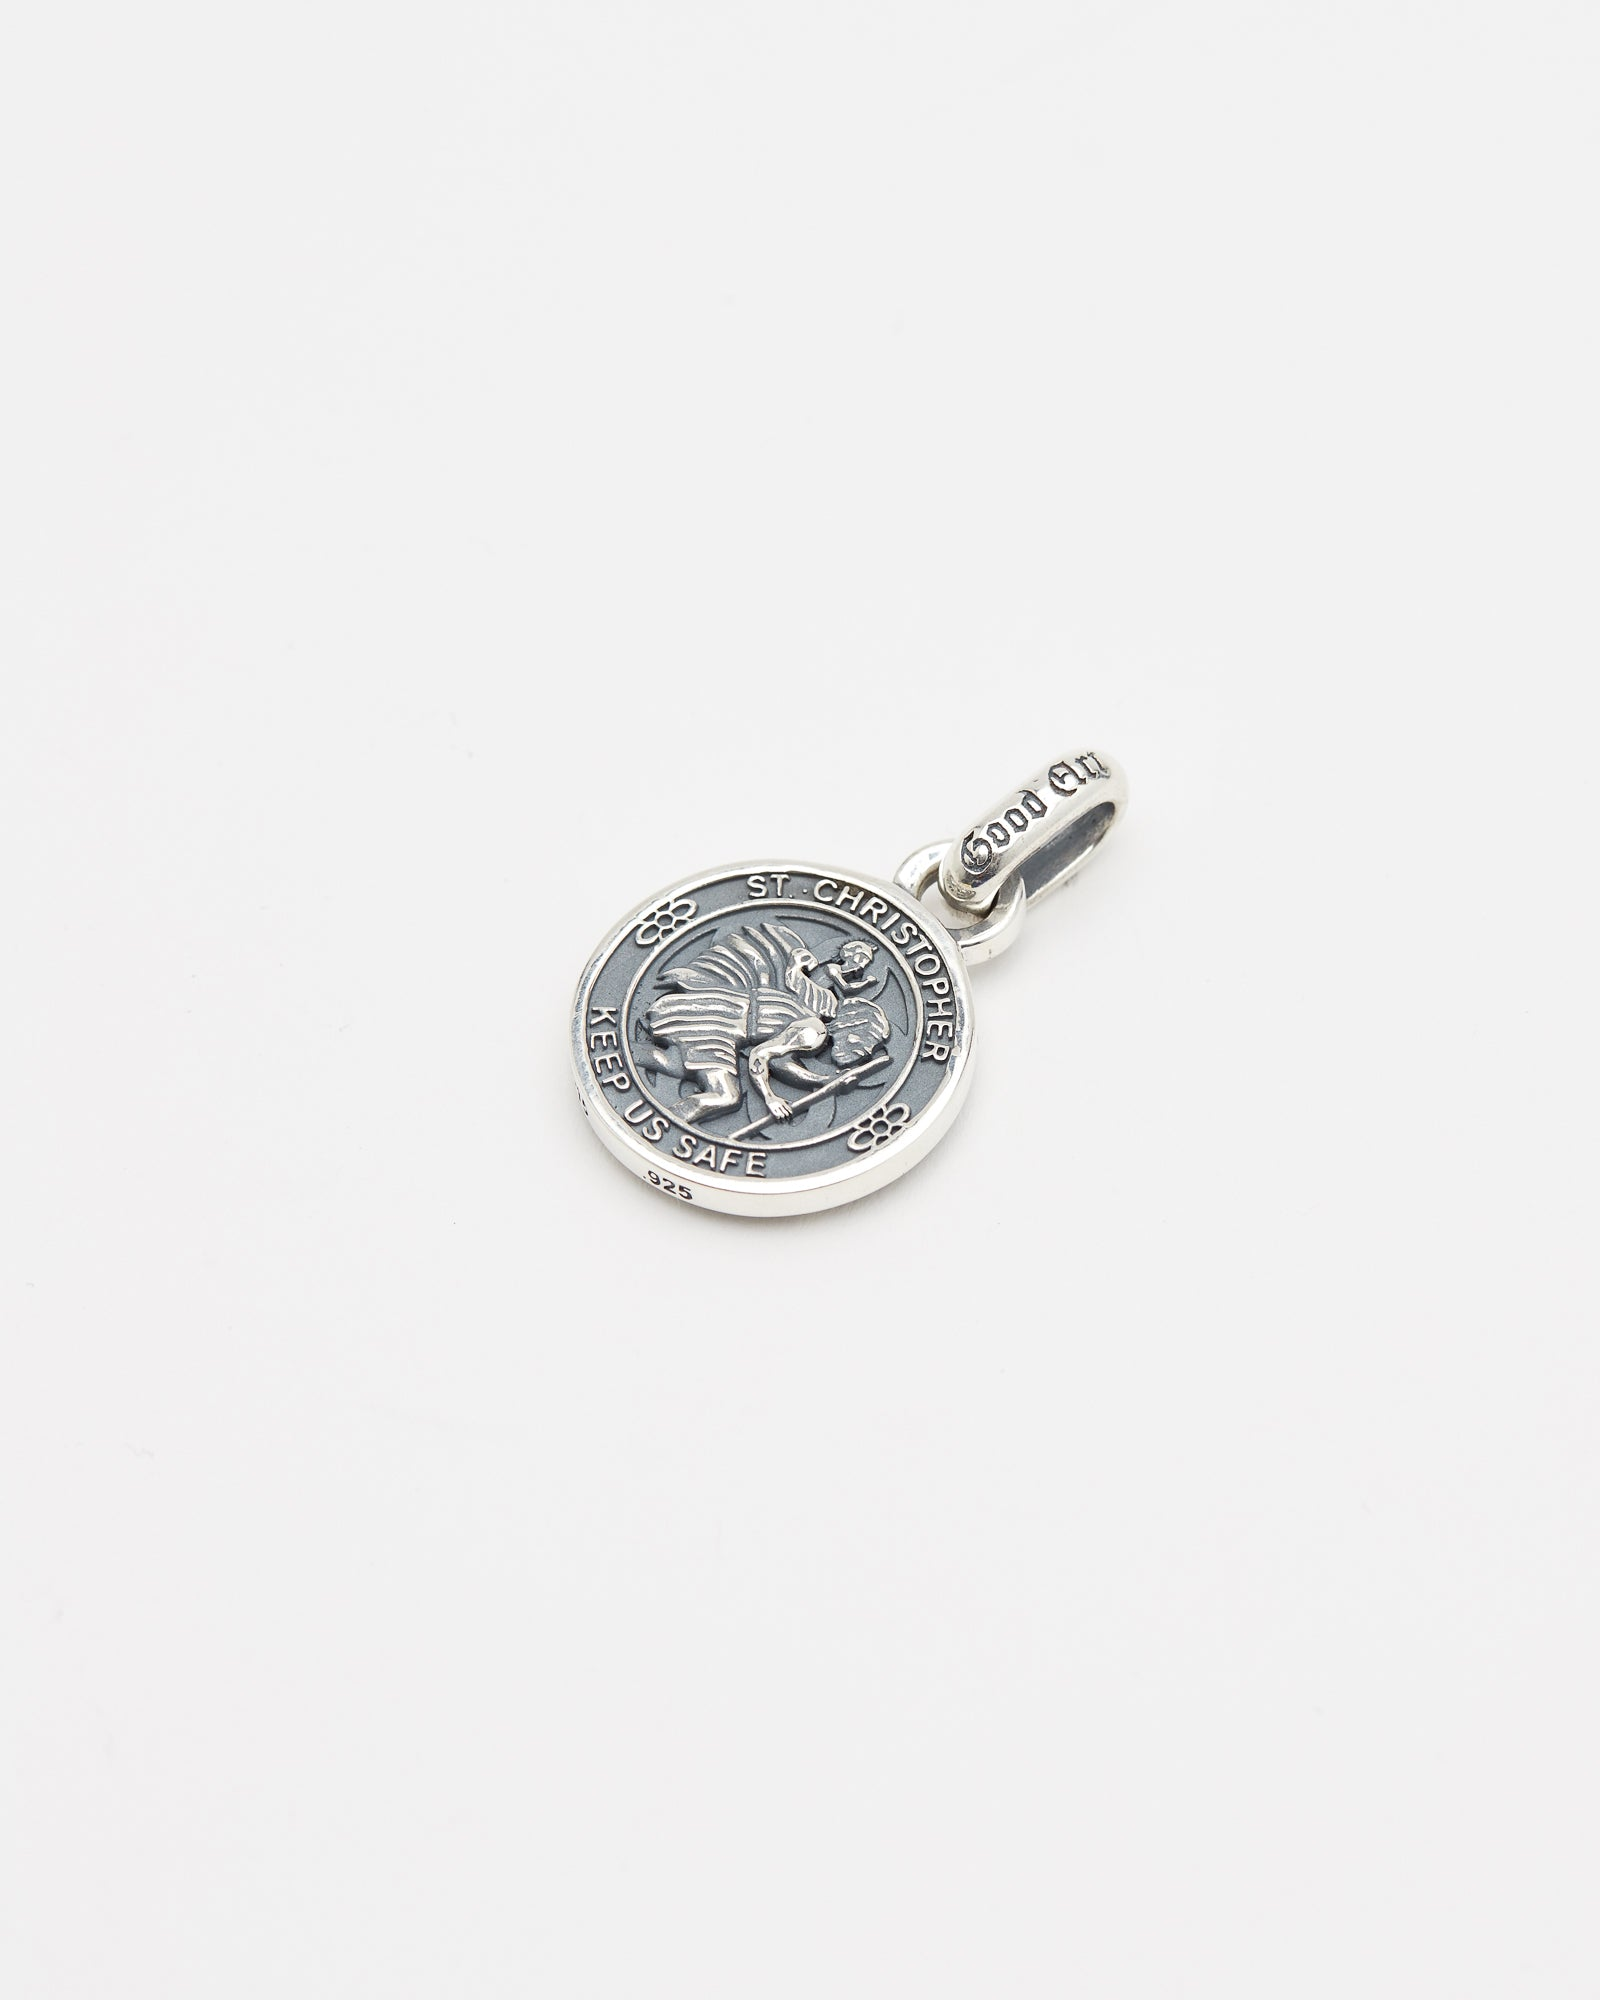 Saint Christopher Pendant, Rosette Burst, Sterling